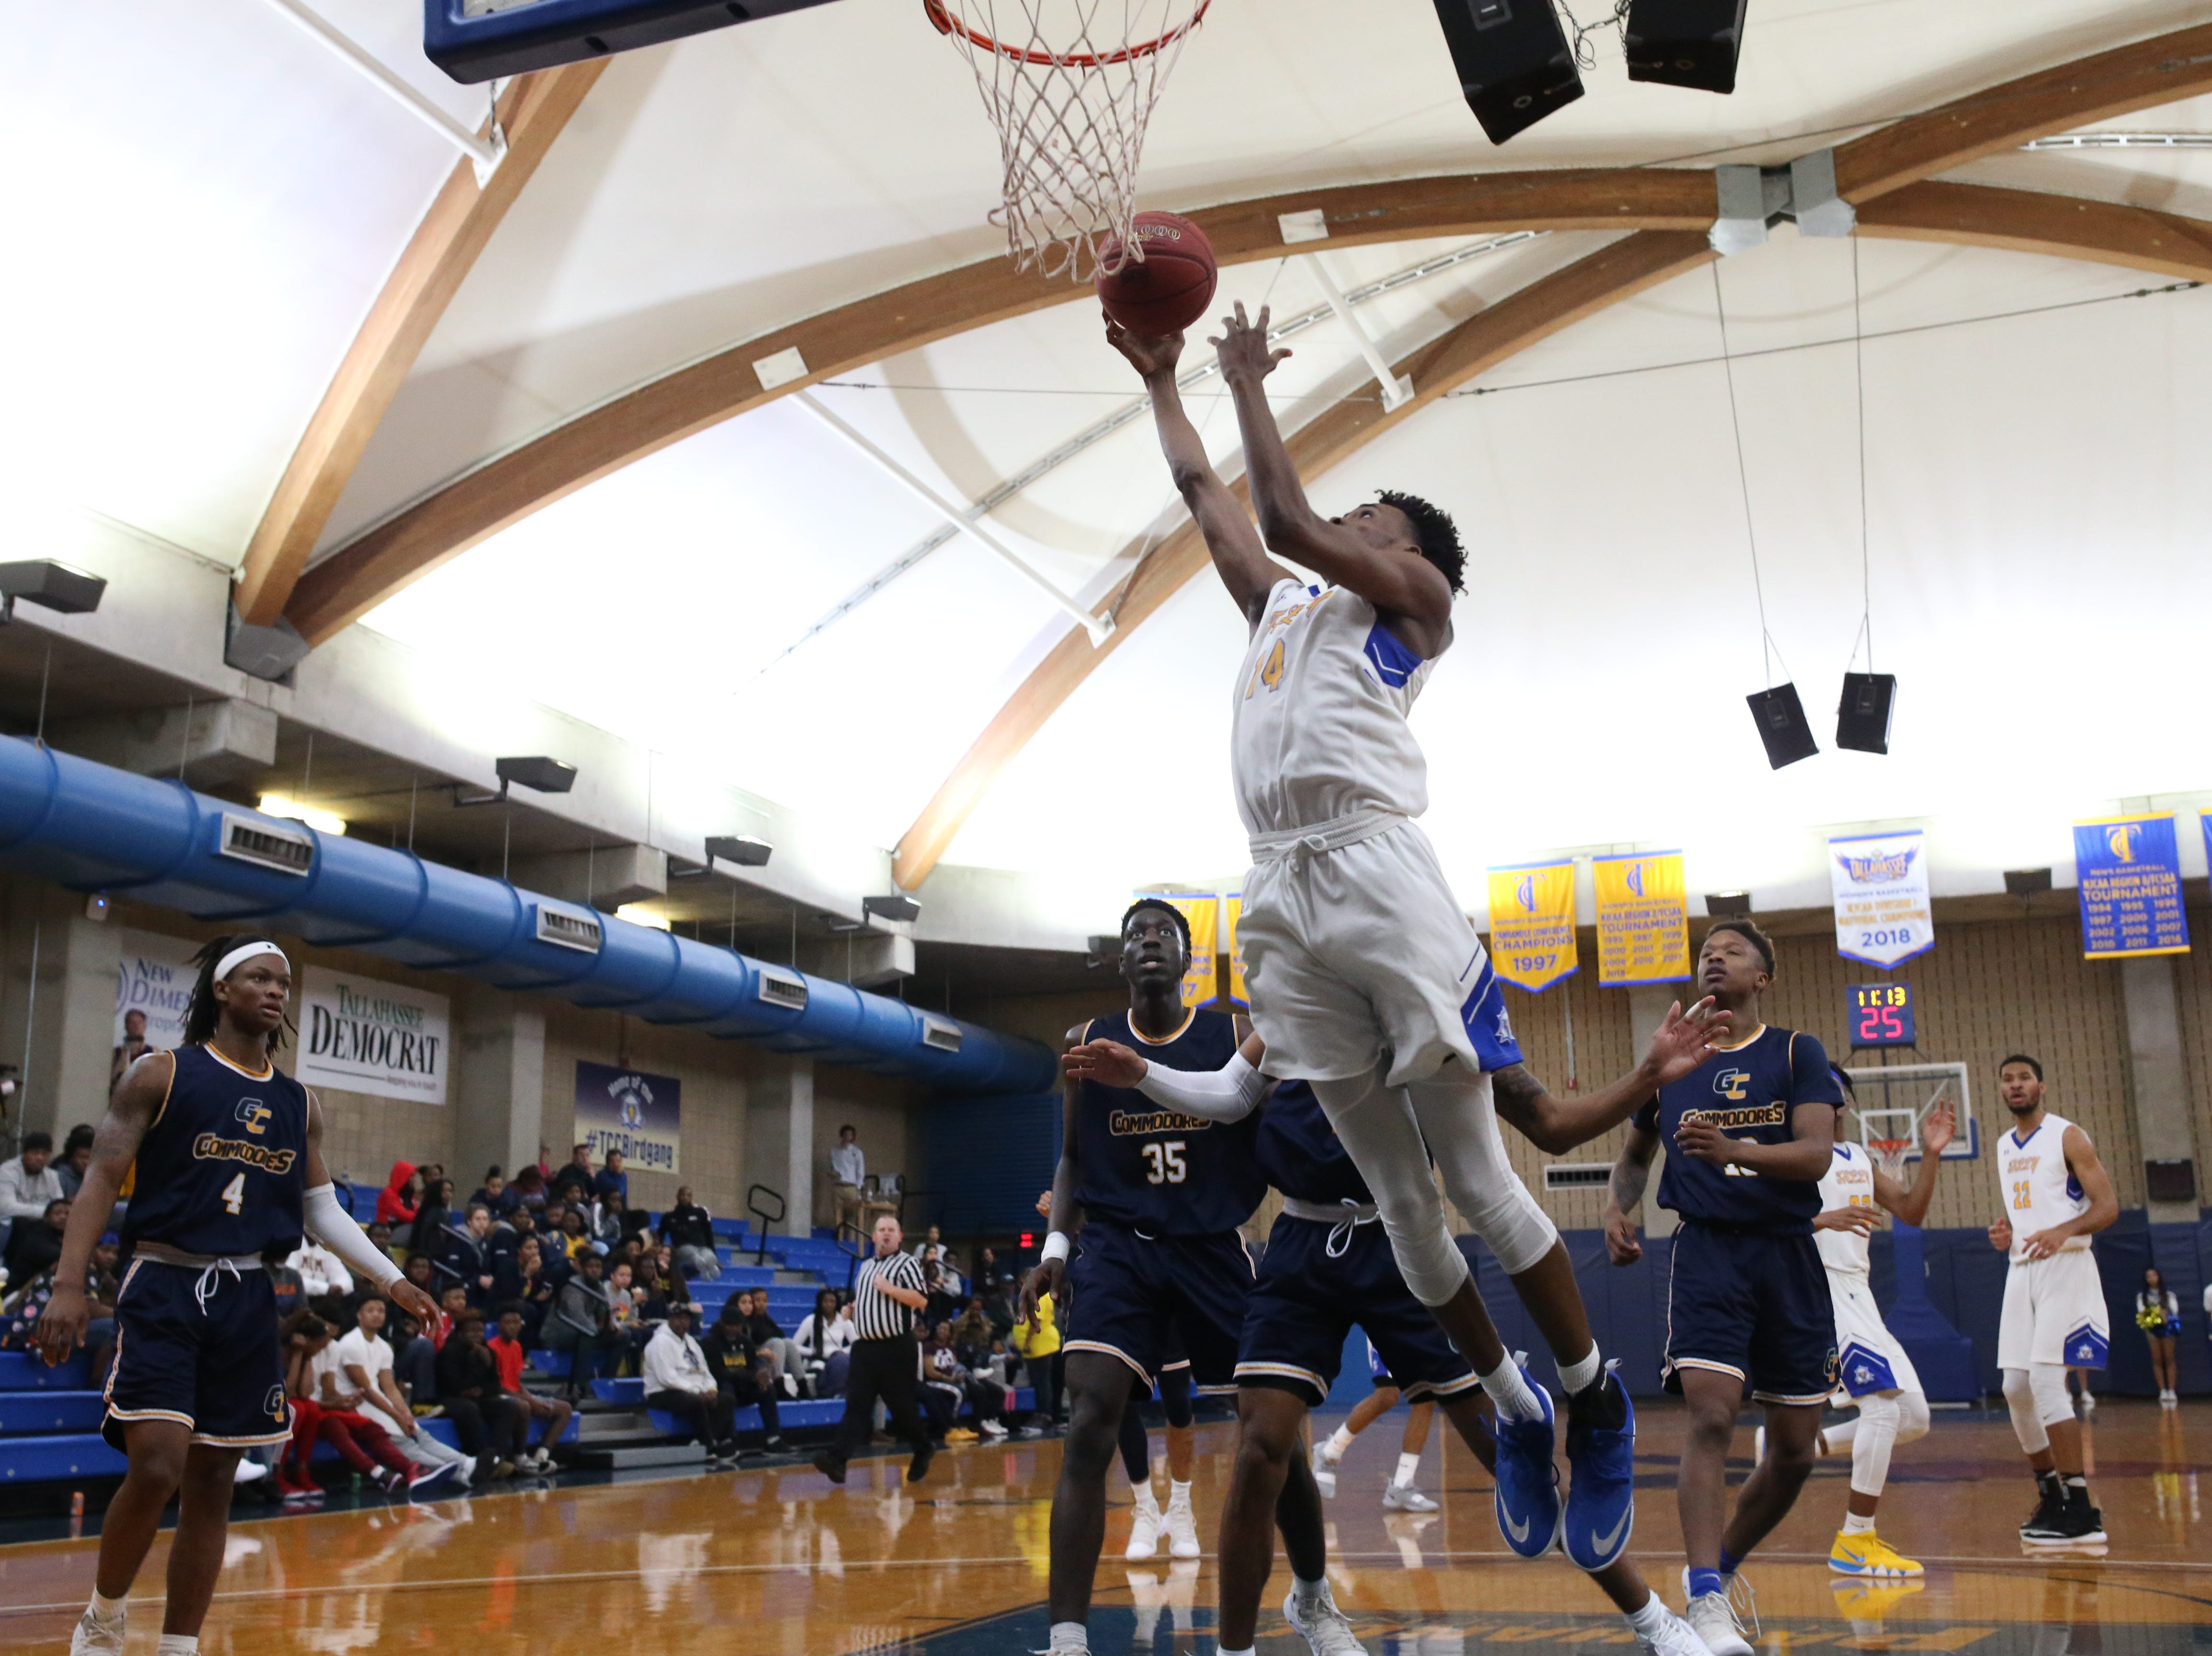 Tallahassee Community College Eagles forward Shamon Mosley (14) goes in for a layup. The Tallahassee Community College Eagles host the Gulf Coast State College Commodores in a conference match-up in the Eagledome, Saturday, Jan. 5, 2019.